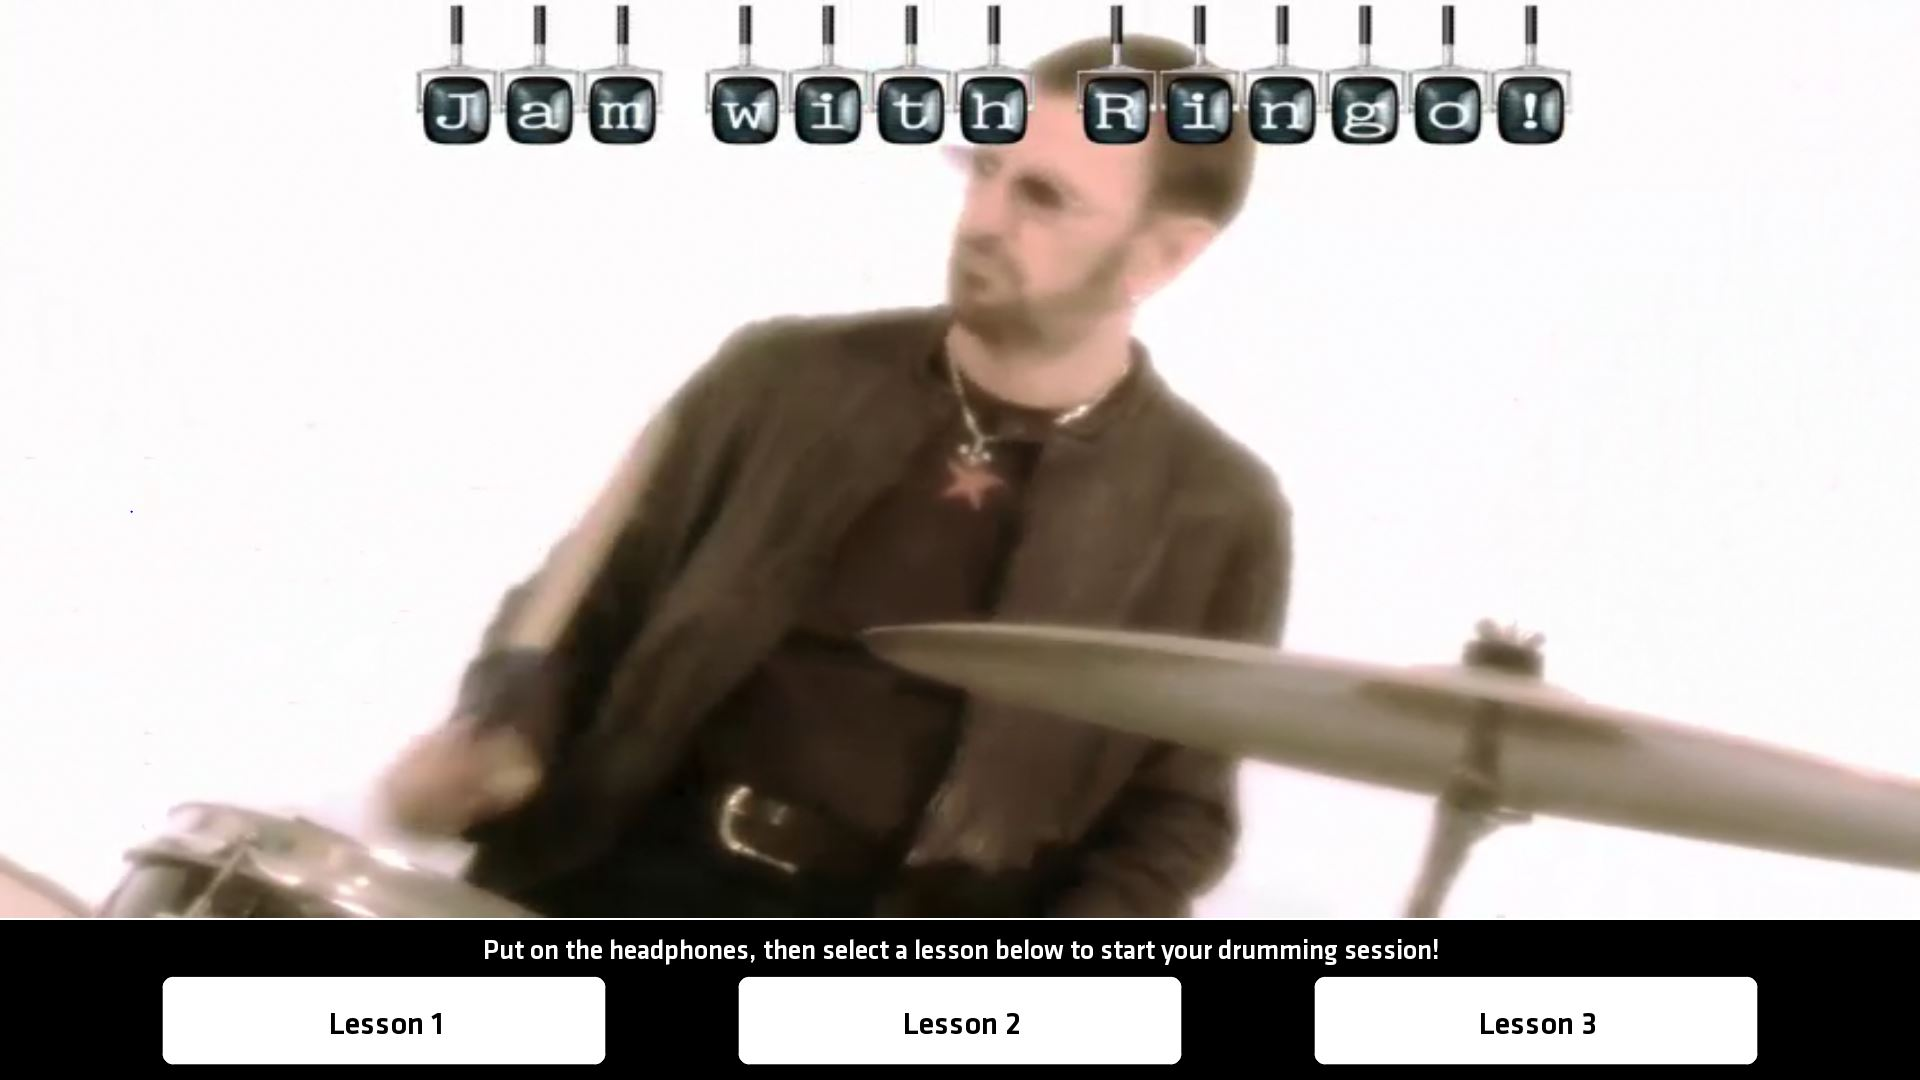 Drum-a-long with Ringo